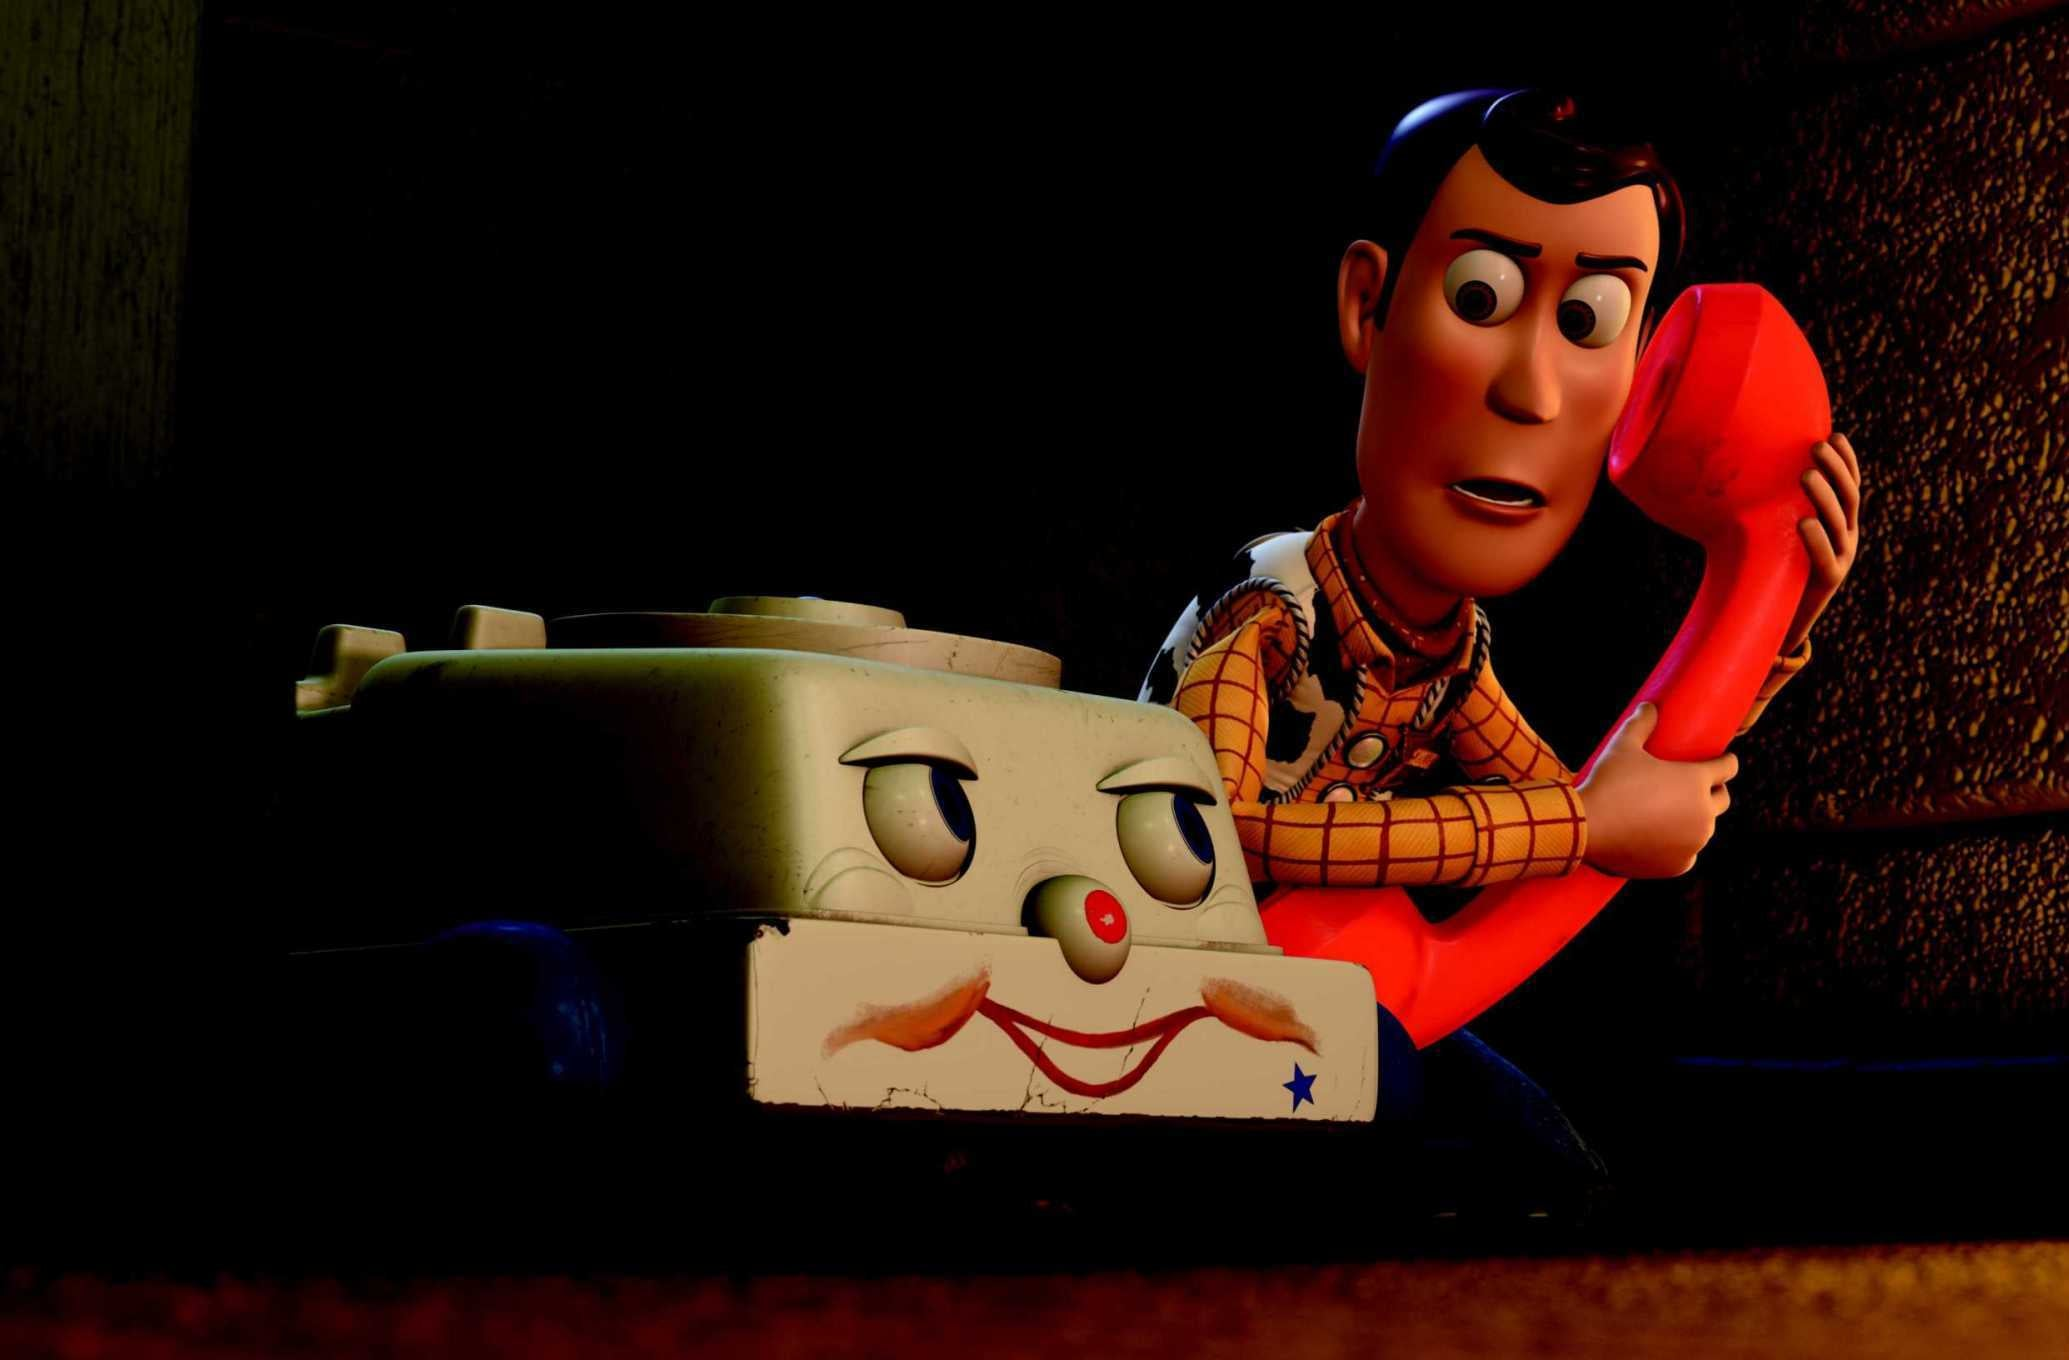 Toy Story 3 has something other summer movies don't: storytelling.